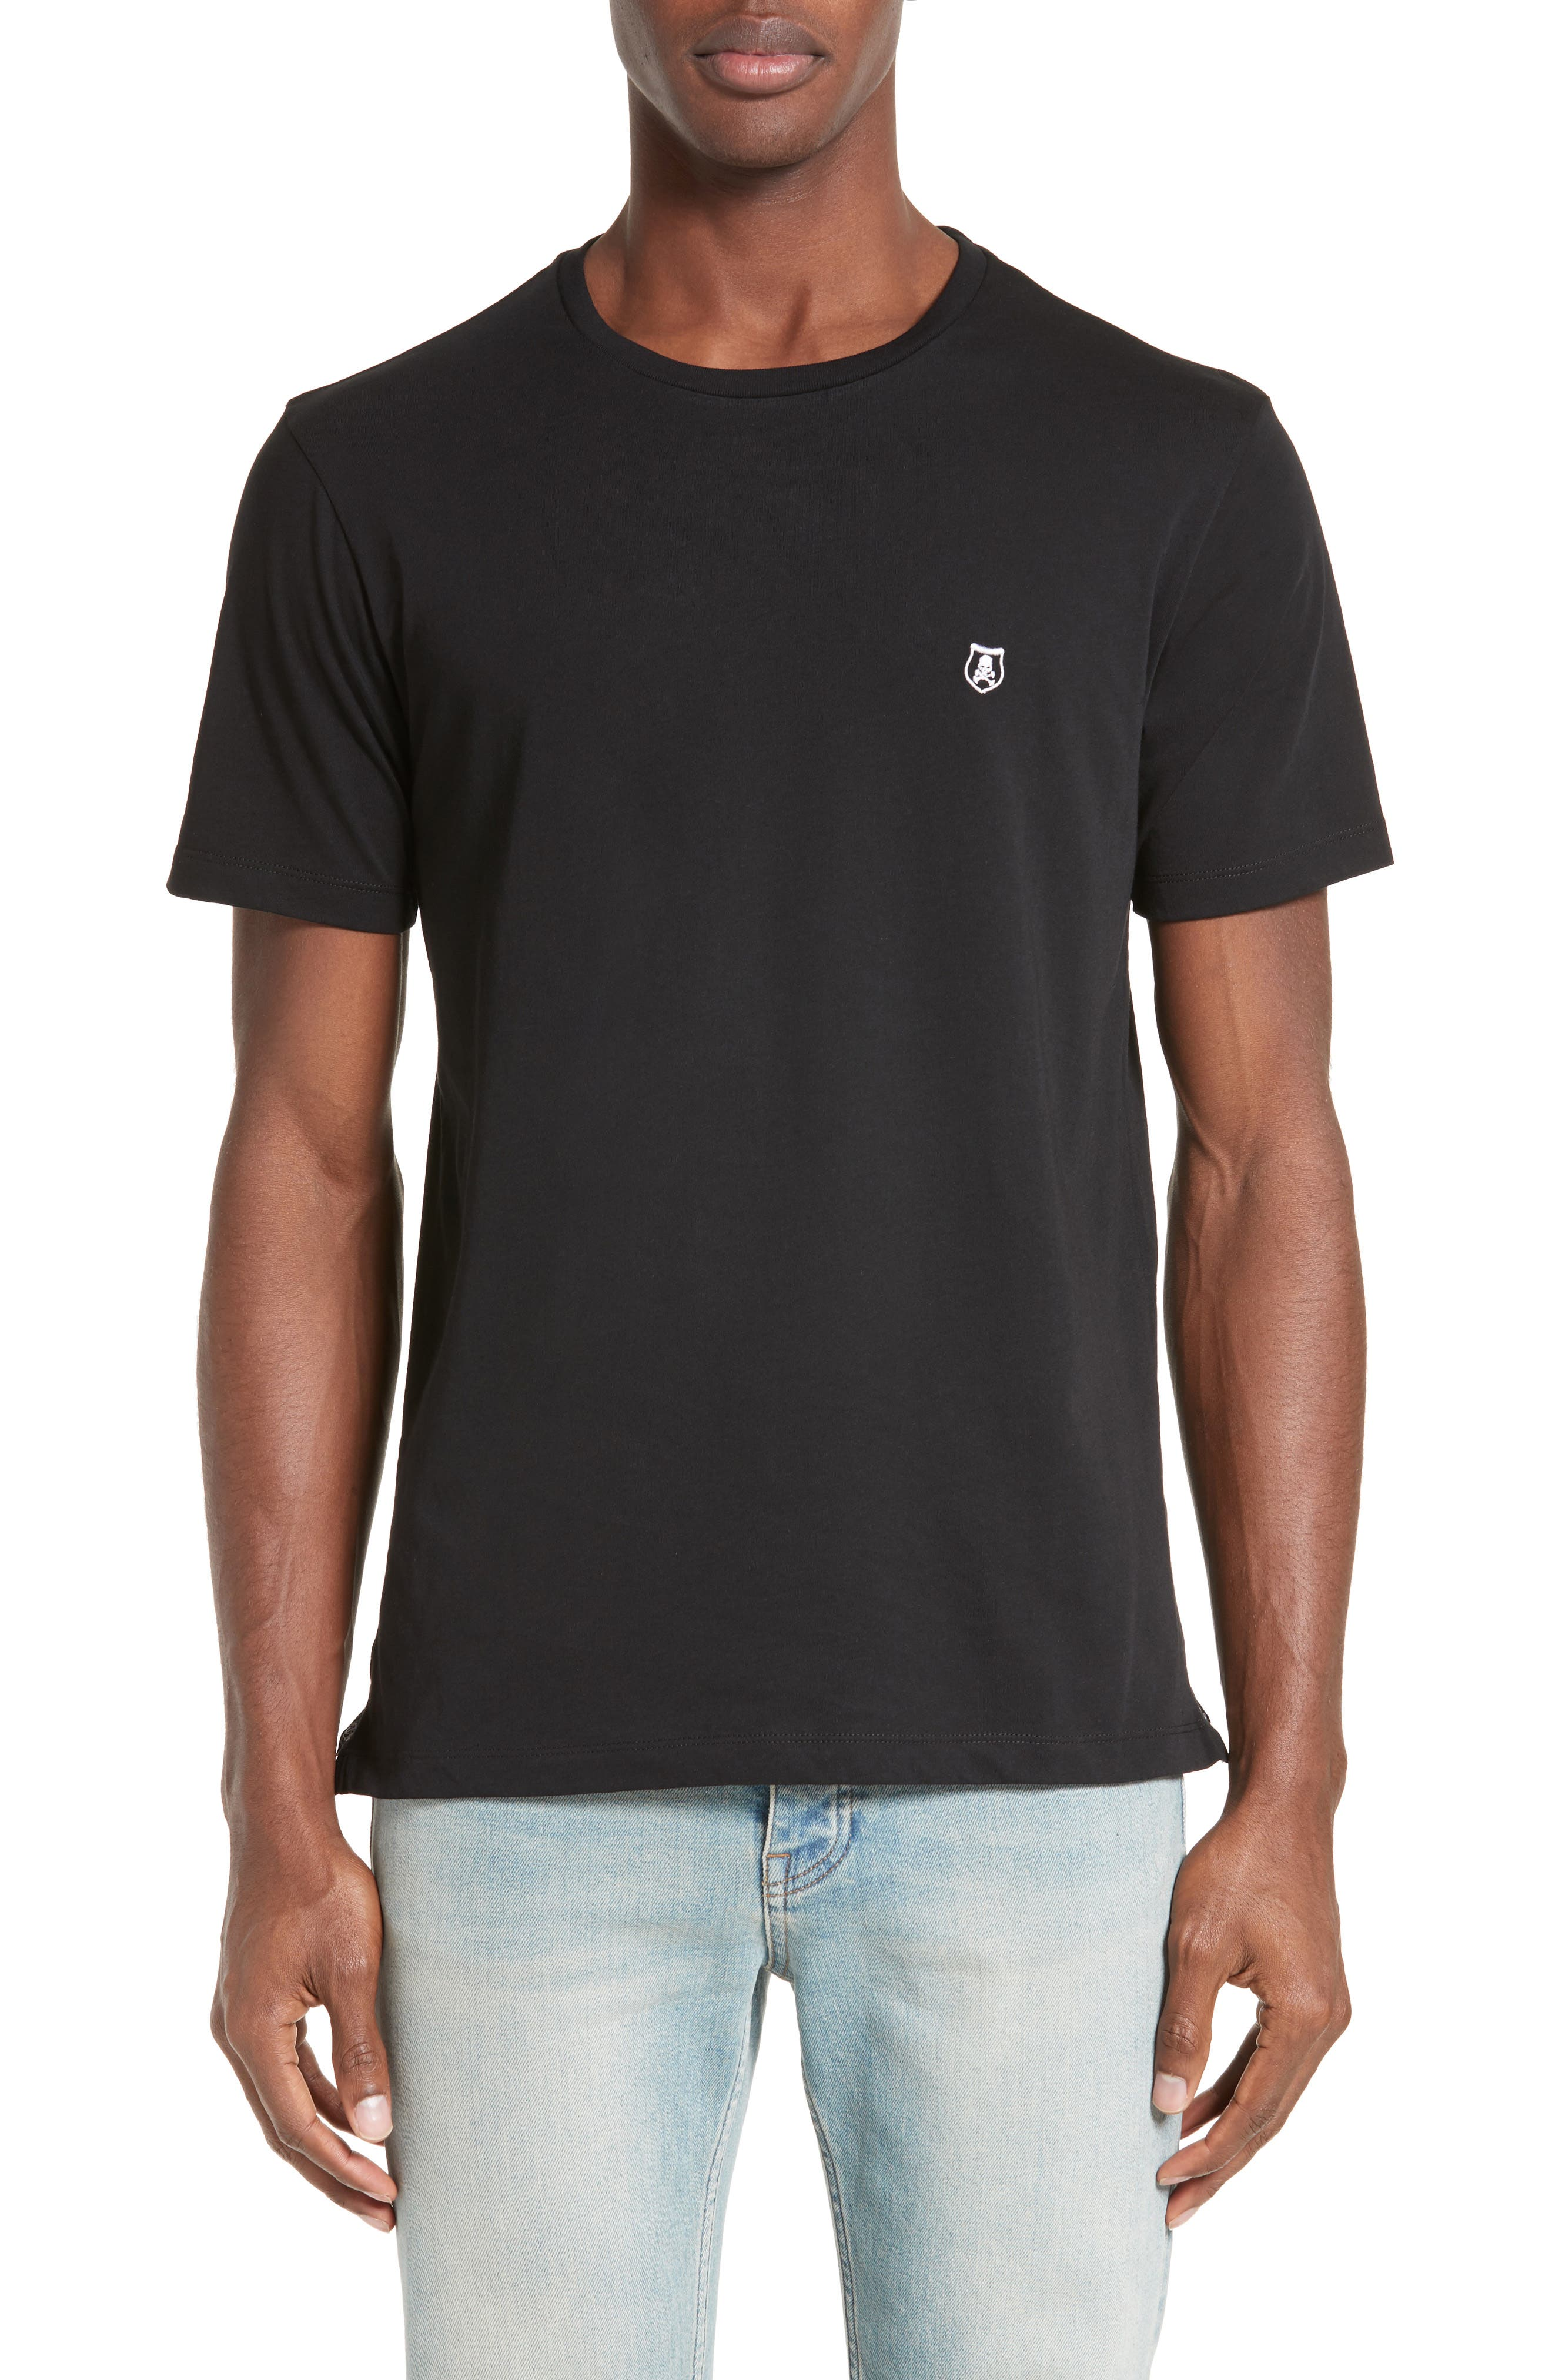 Alternate Image 1 Selected - The Kooples Embroidered T-Shirt